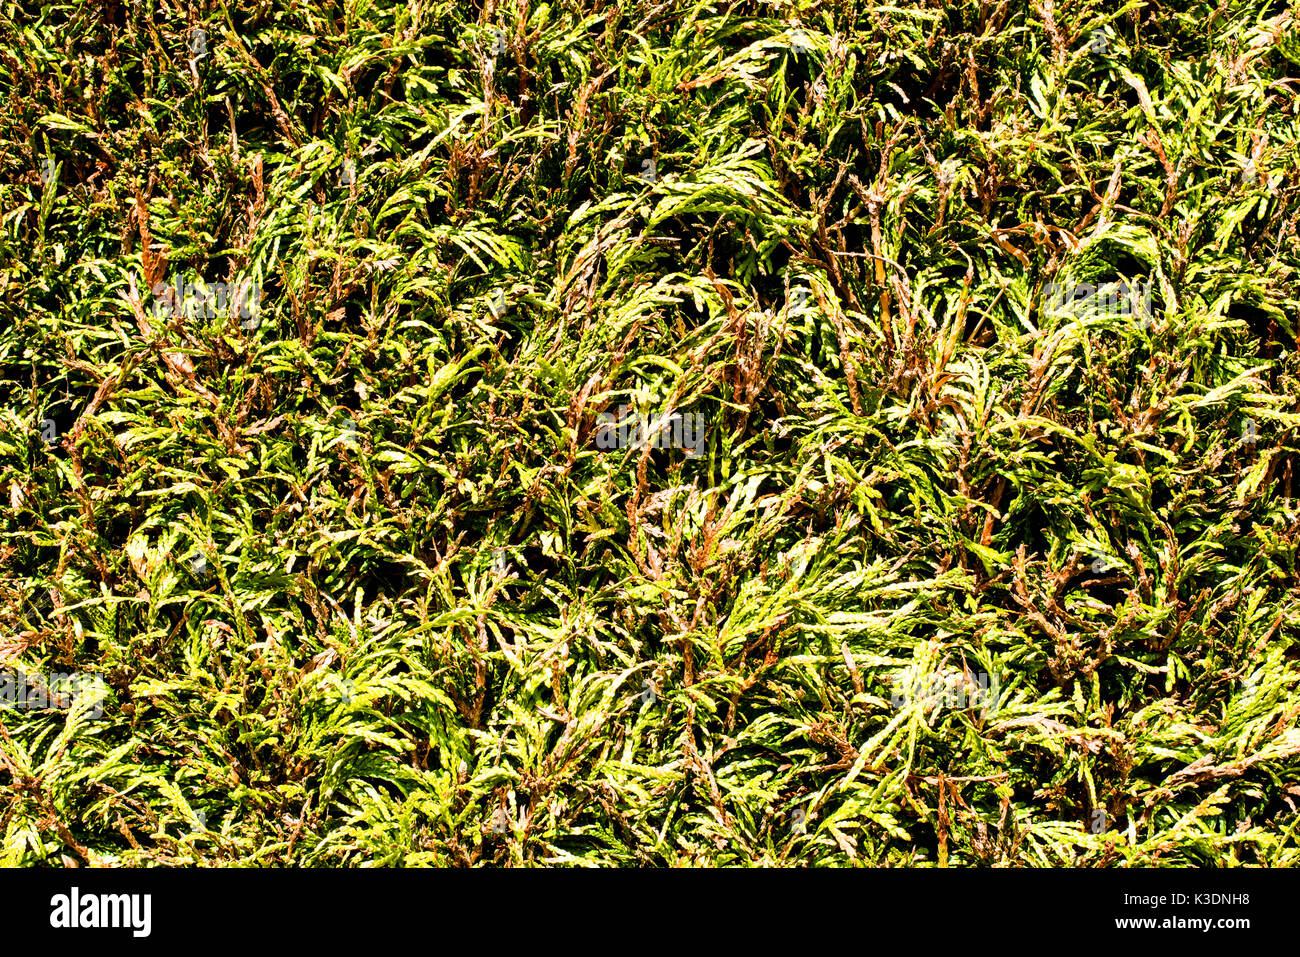 Close Up Of A Green Conifer Hedge - Stock Image